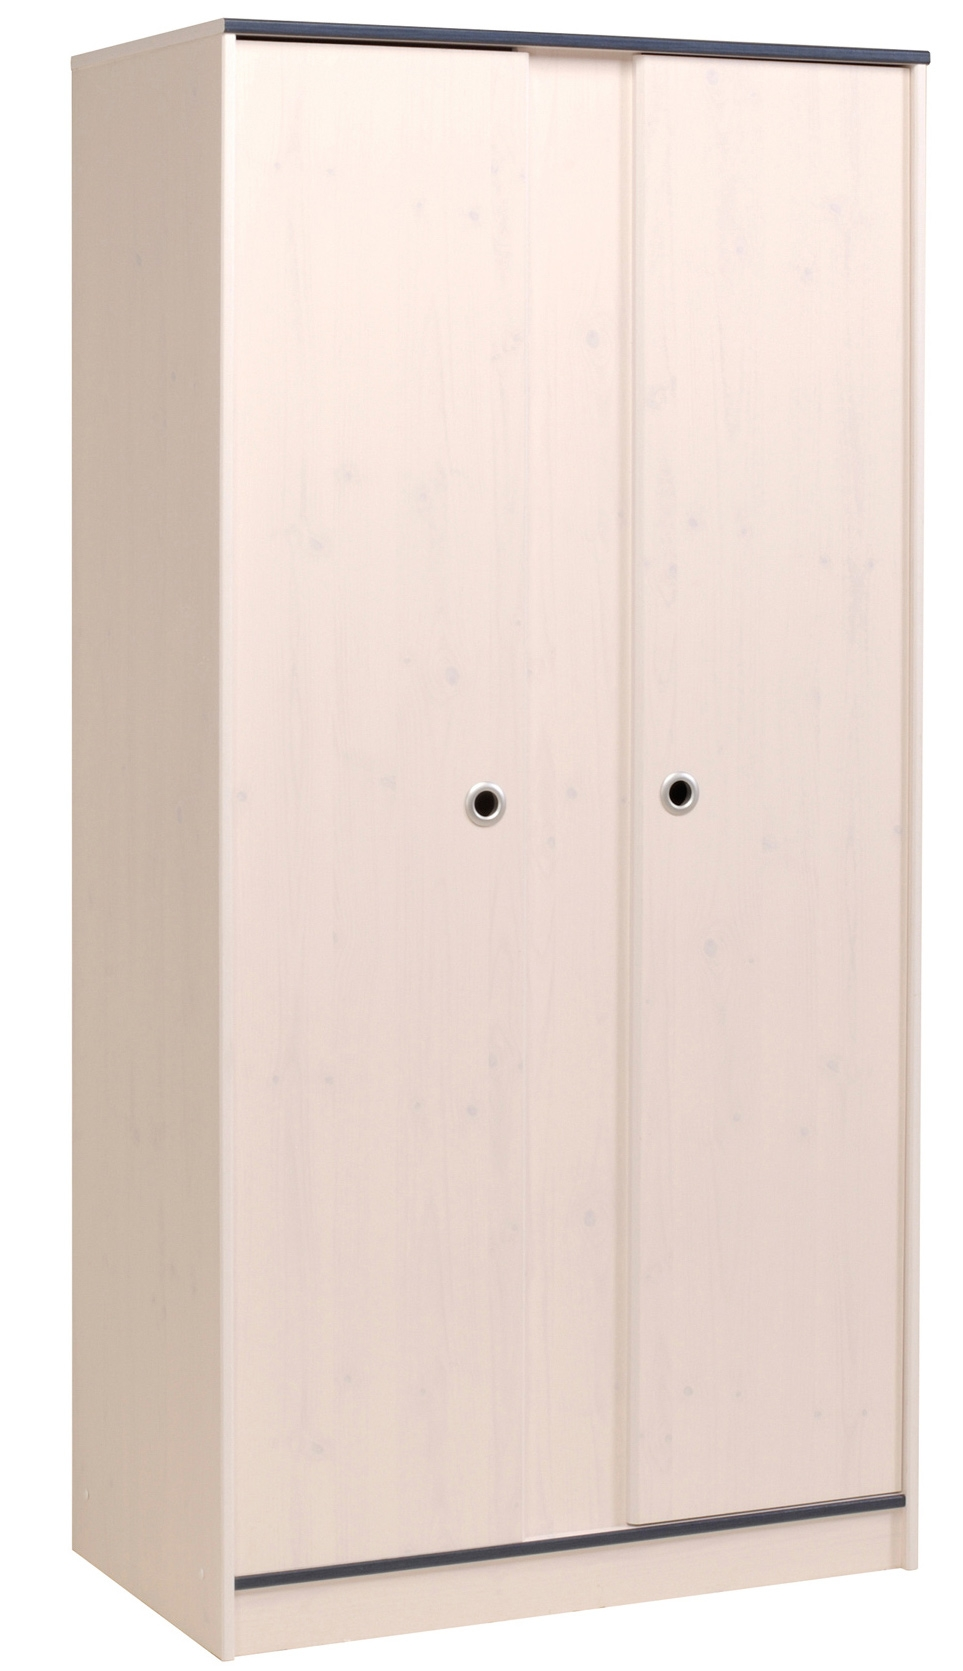 armoire 2 portes bois blanc et bleu suzy. Black Bedroom Furniture Sets. Home Design Ideas